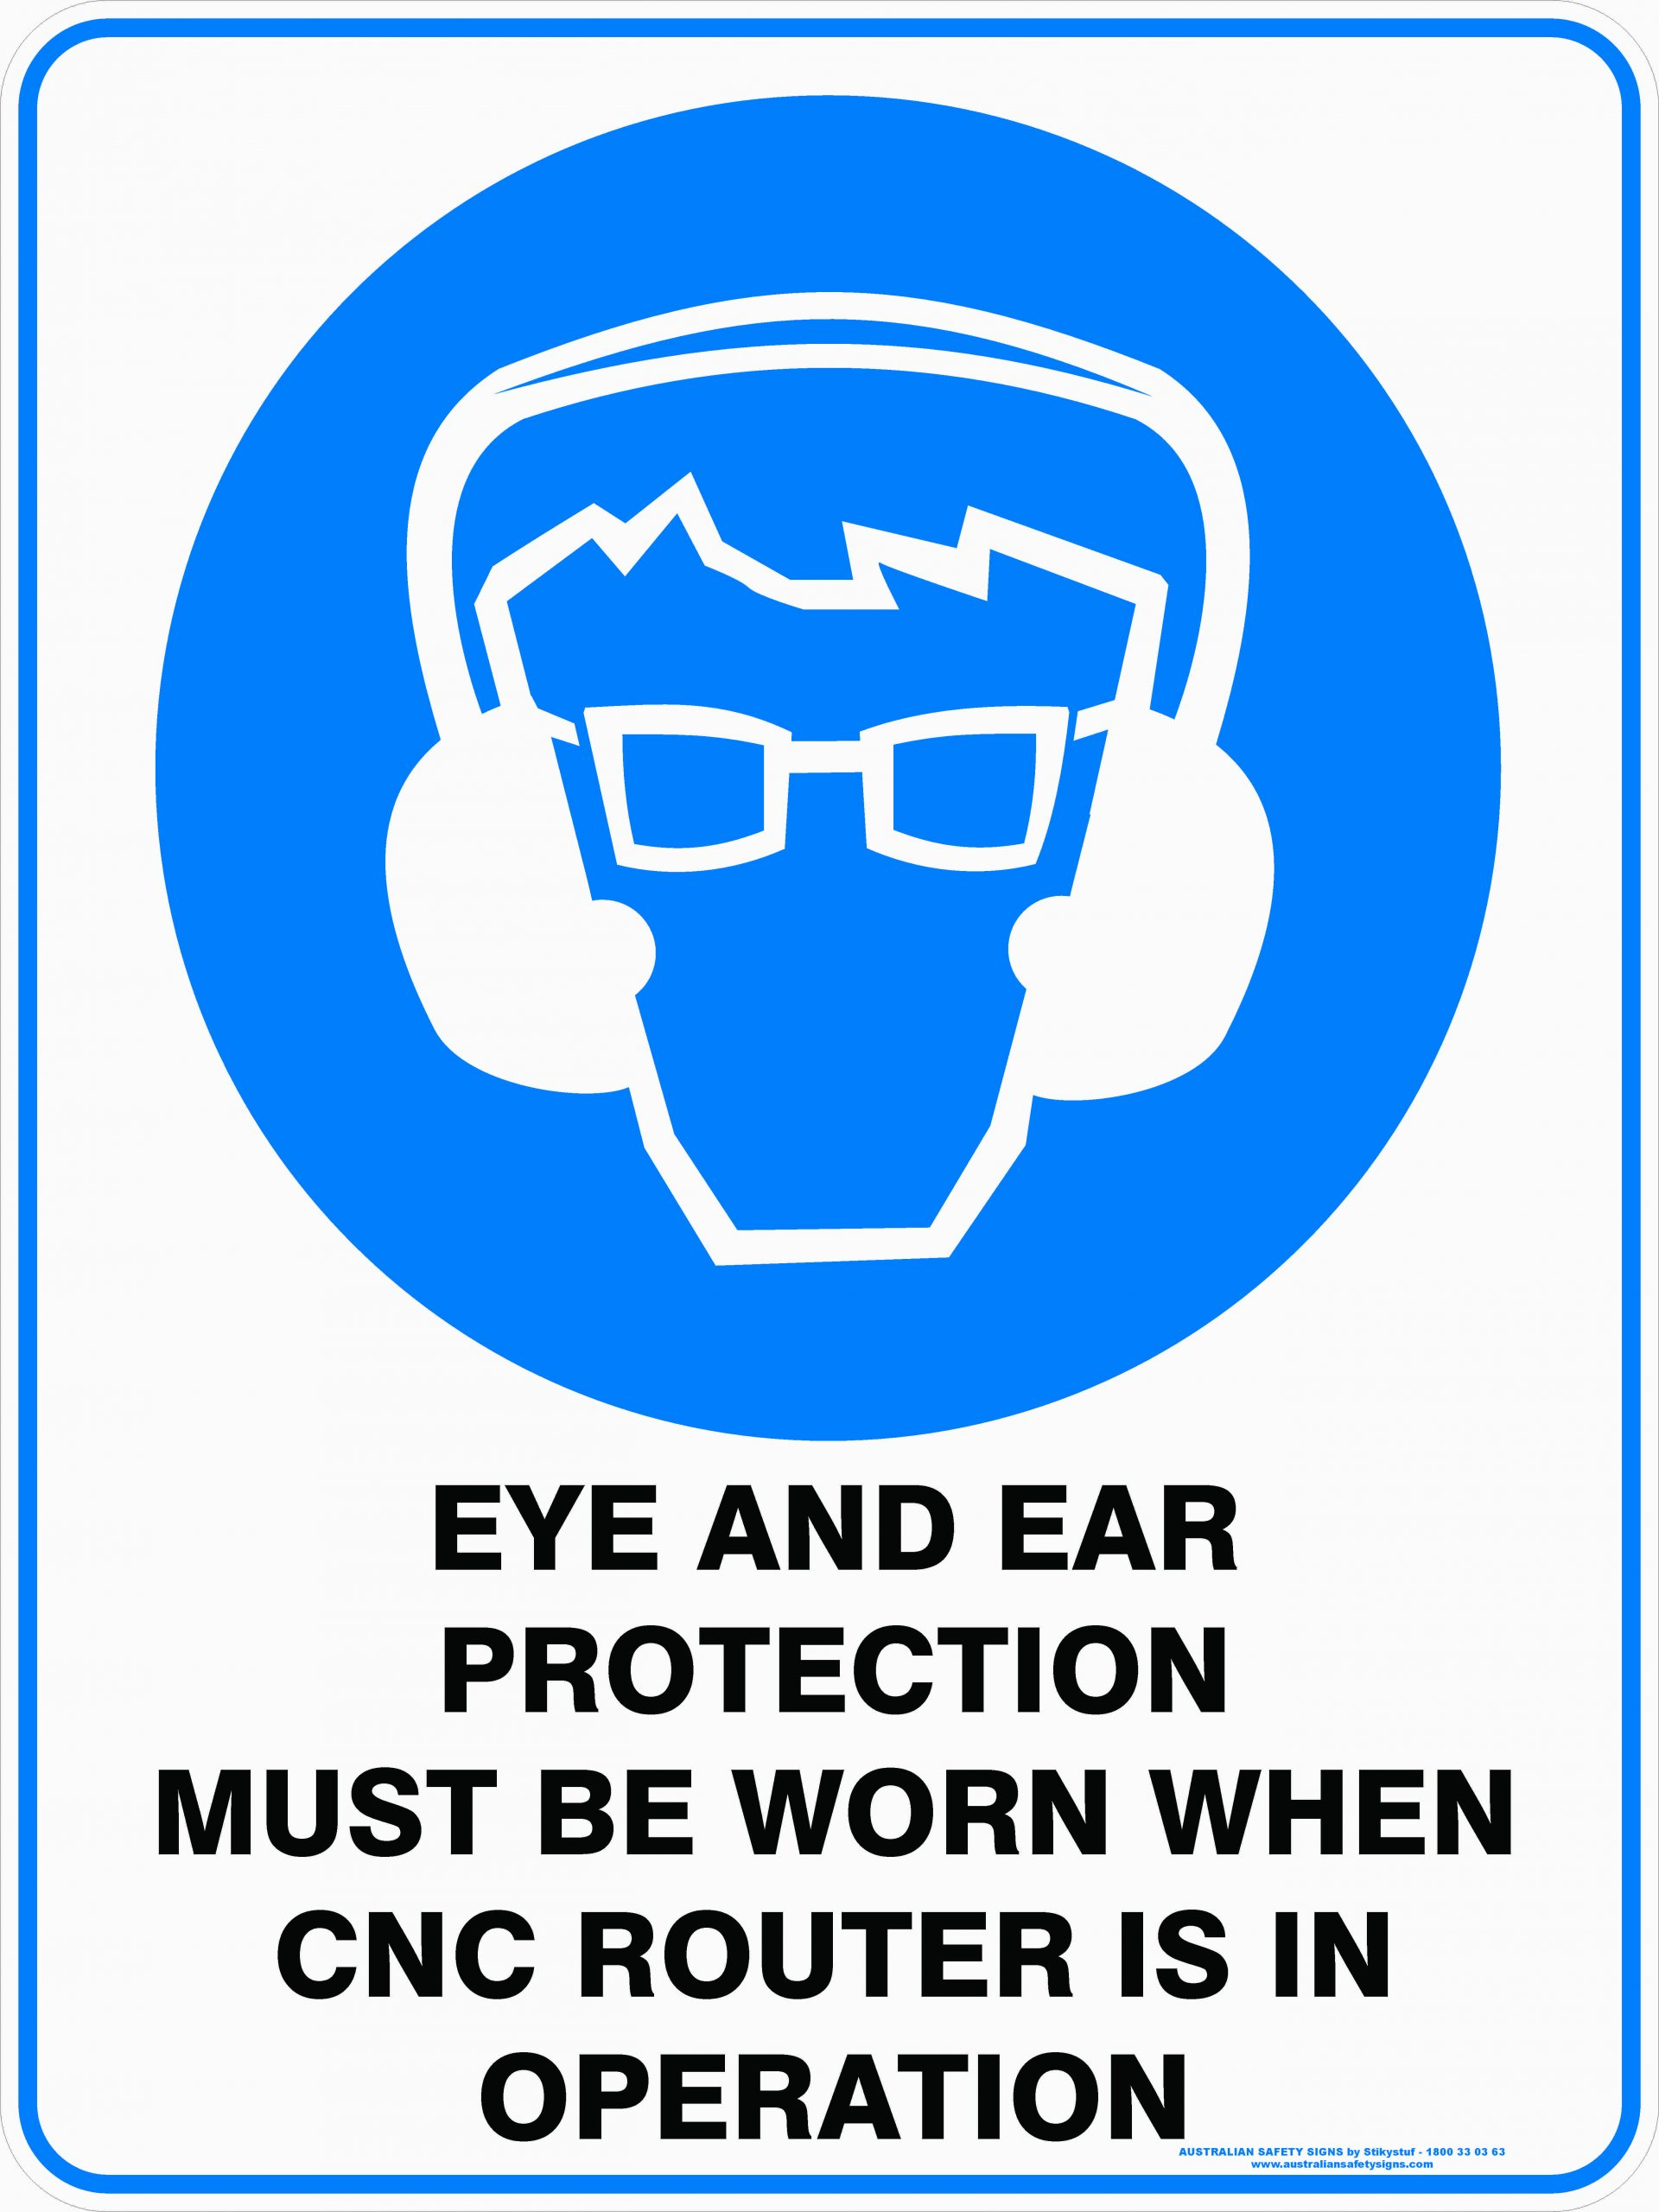 Mandatory Signs EYE AND EAR PROTECTION MUST BE WORN WHEN CNC ROUTER IS IN OPERATION